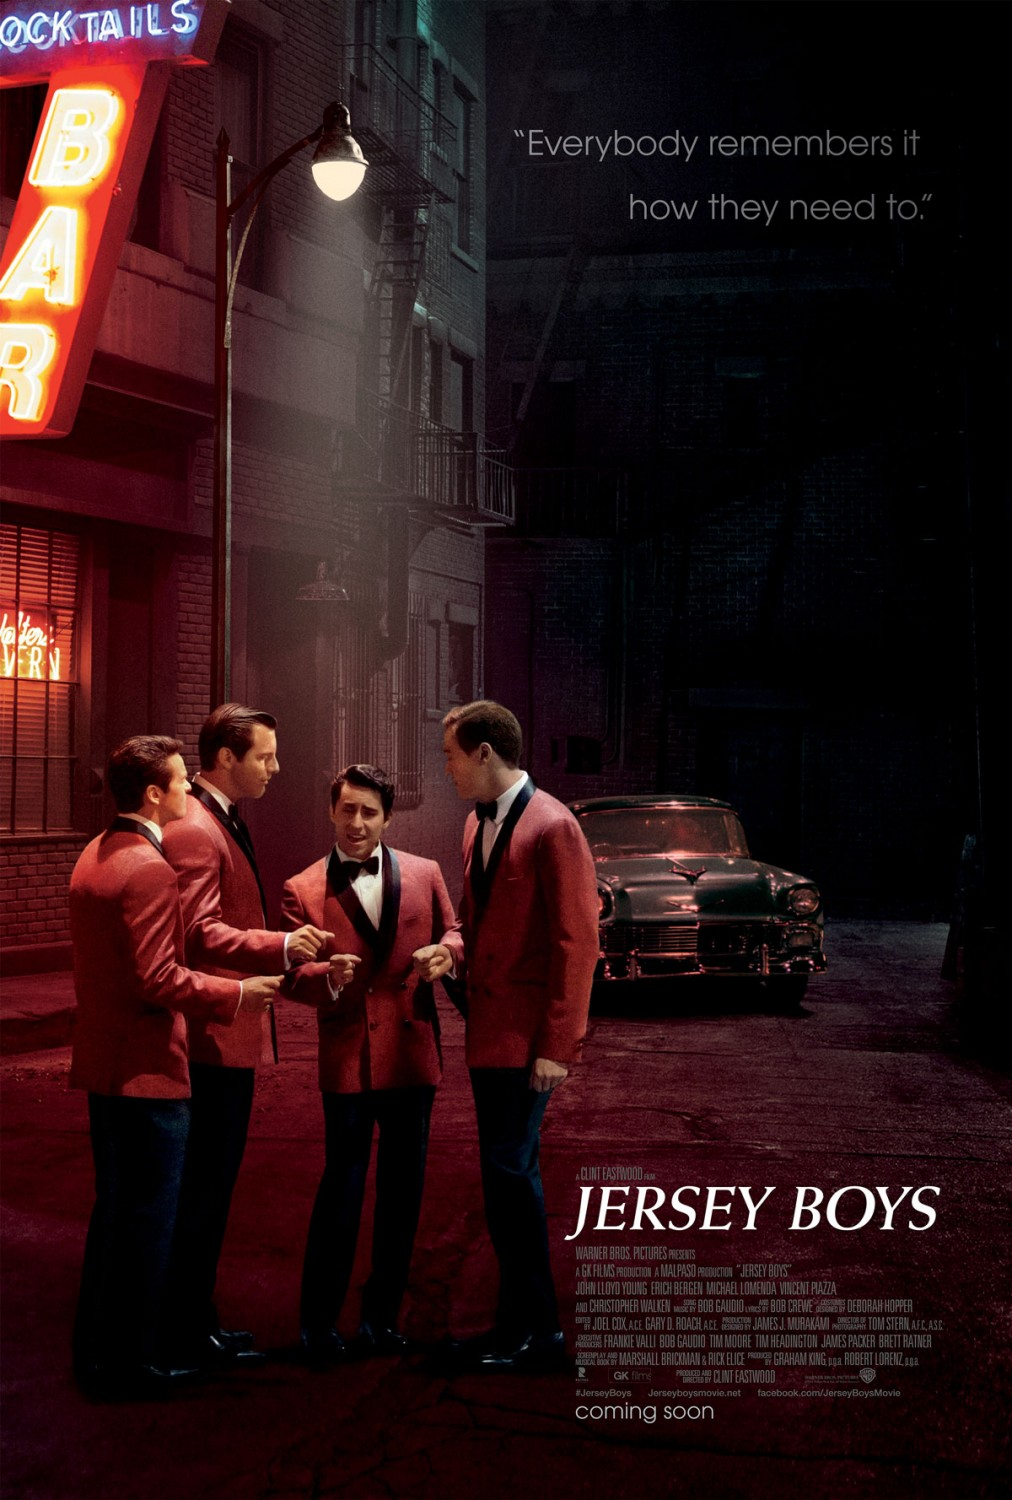 JERSEY BOYS-Official Poster Banner PROMO XLG-15MAIO2014